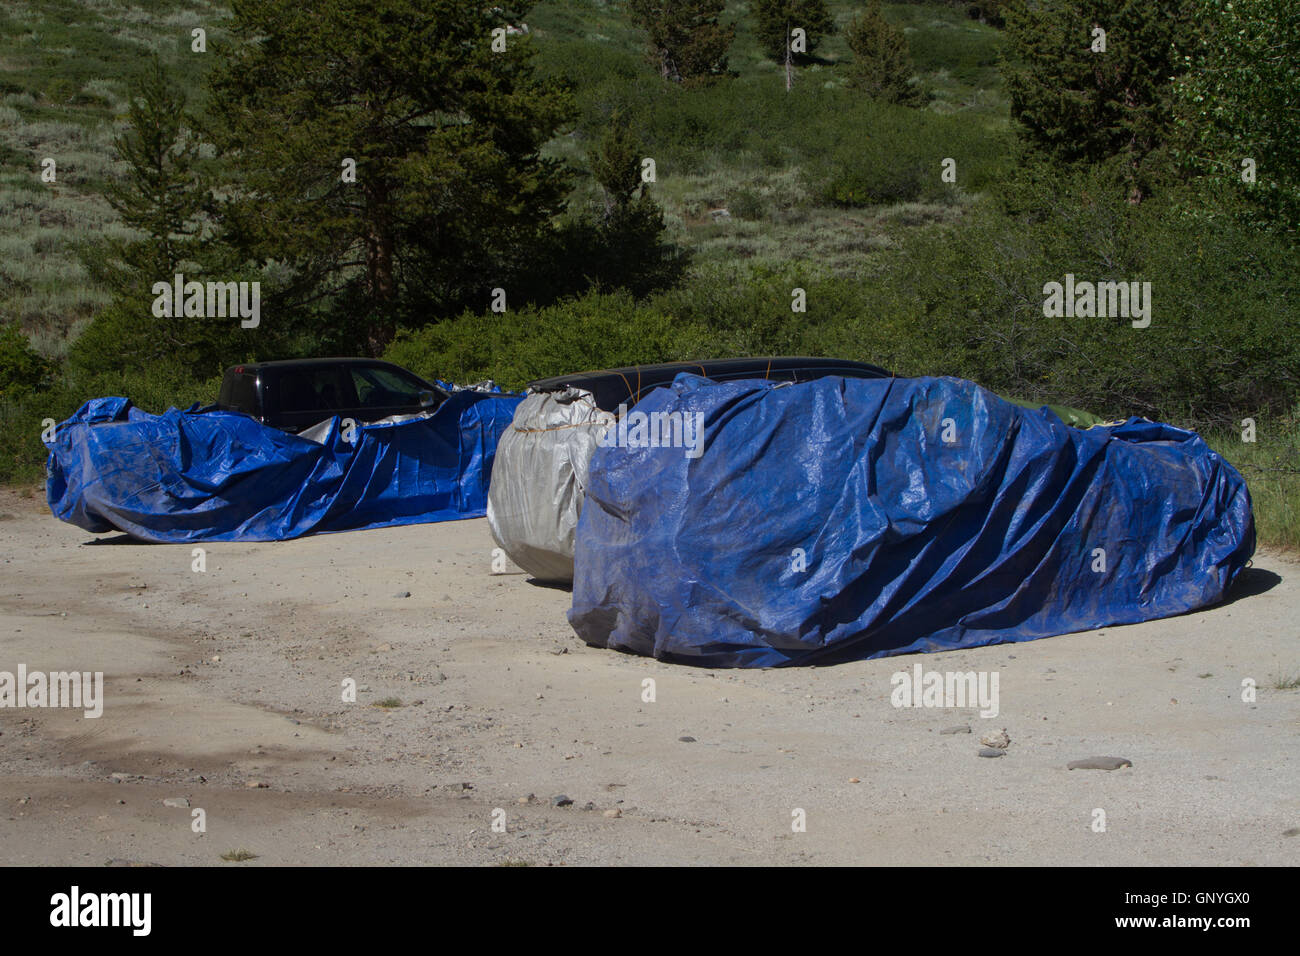 Vehicles protected with trapouline or wire to prevent marmots from damaging pipes etc. California. USA - Stock Image